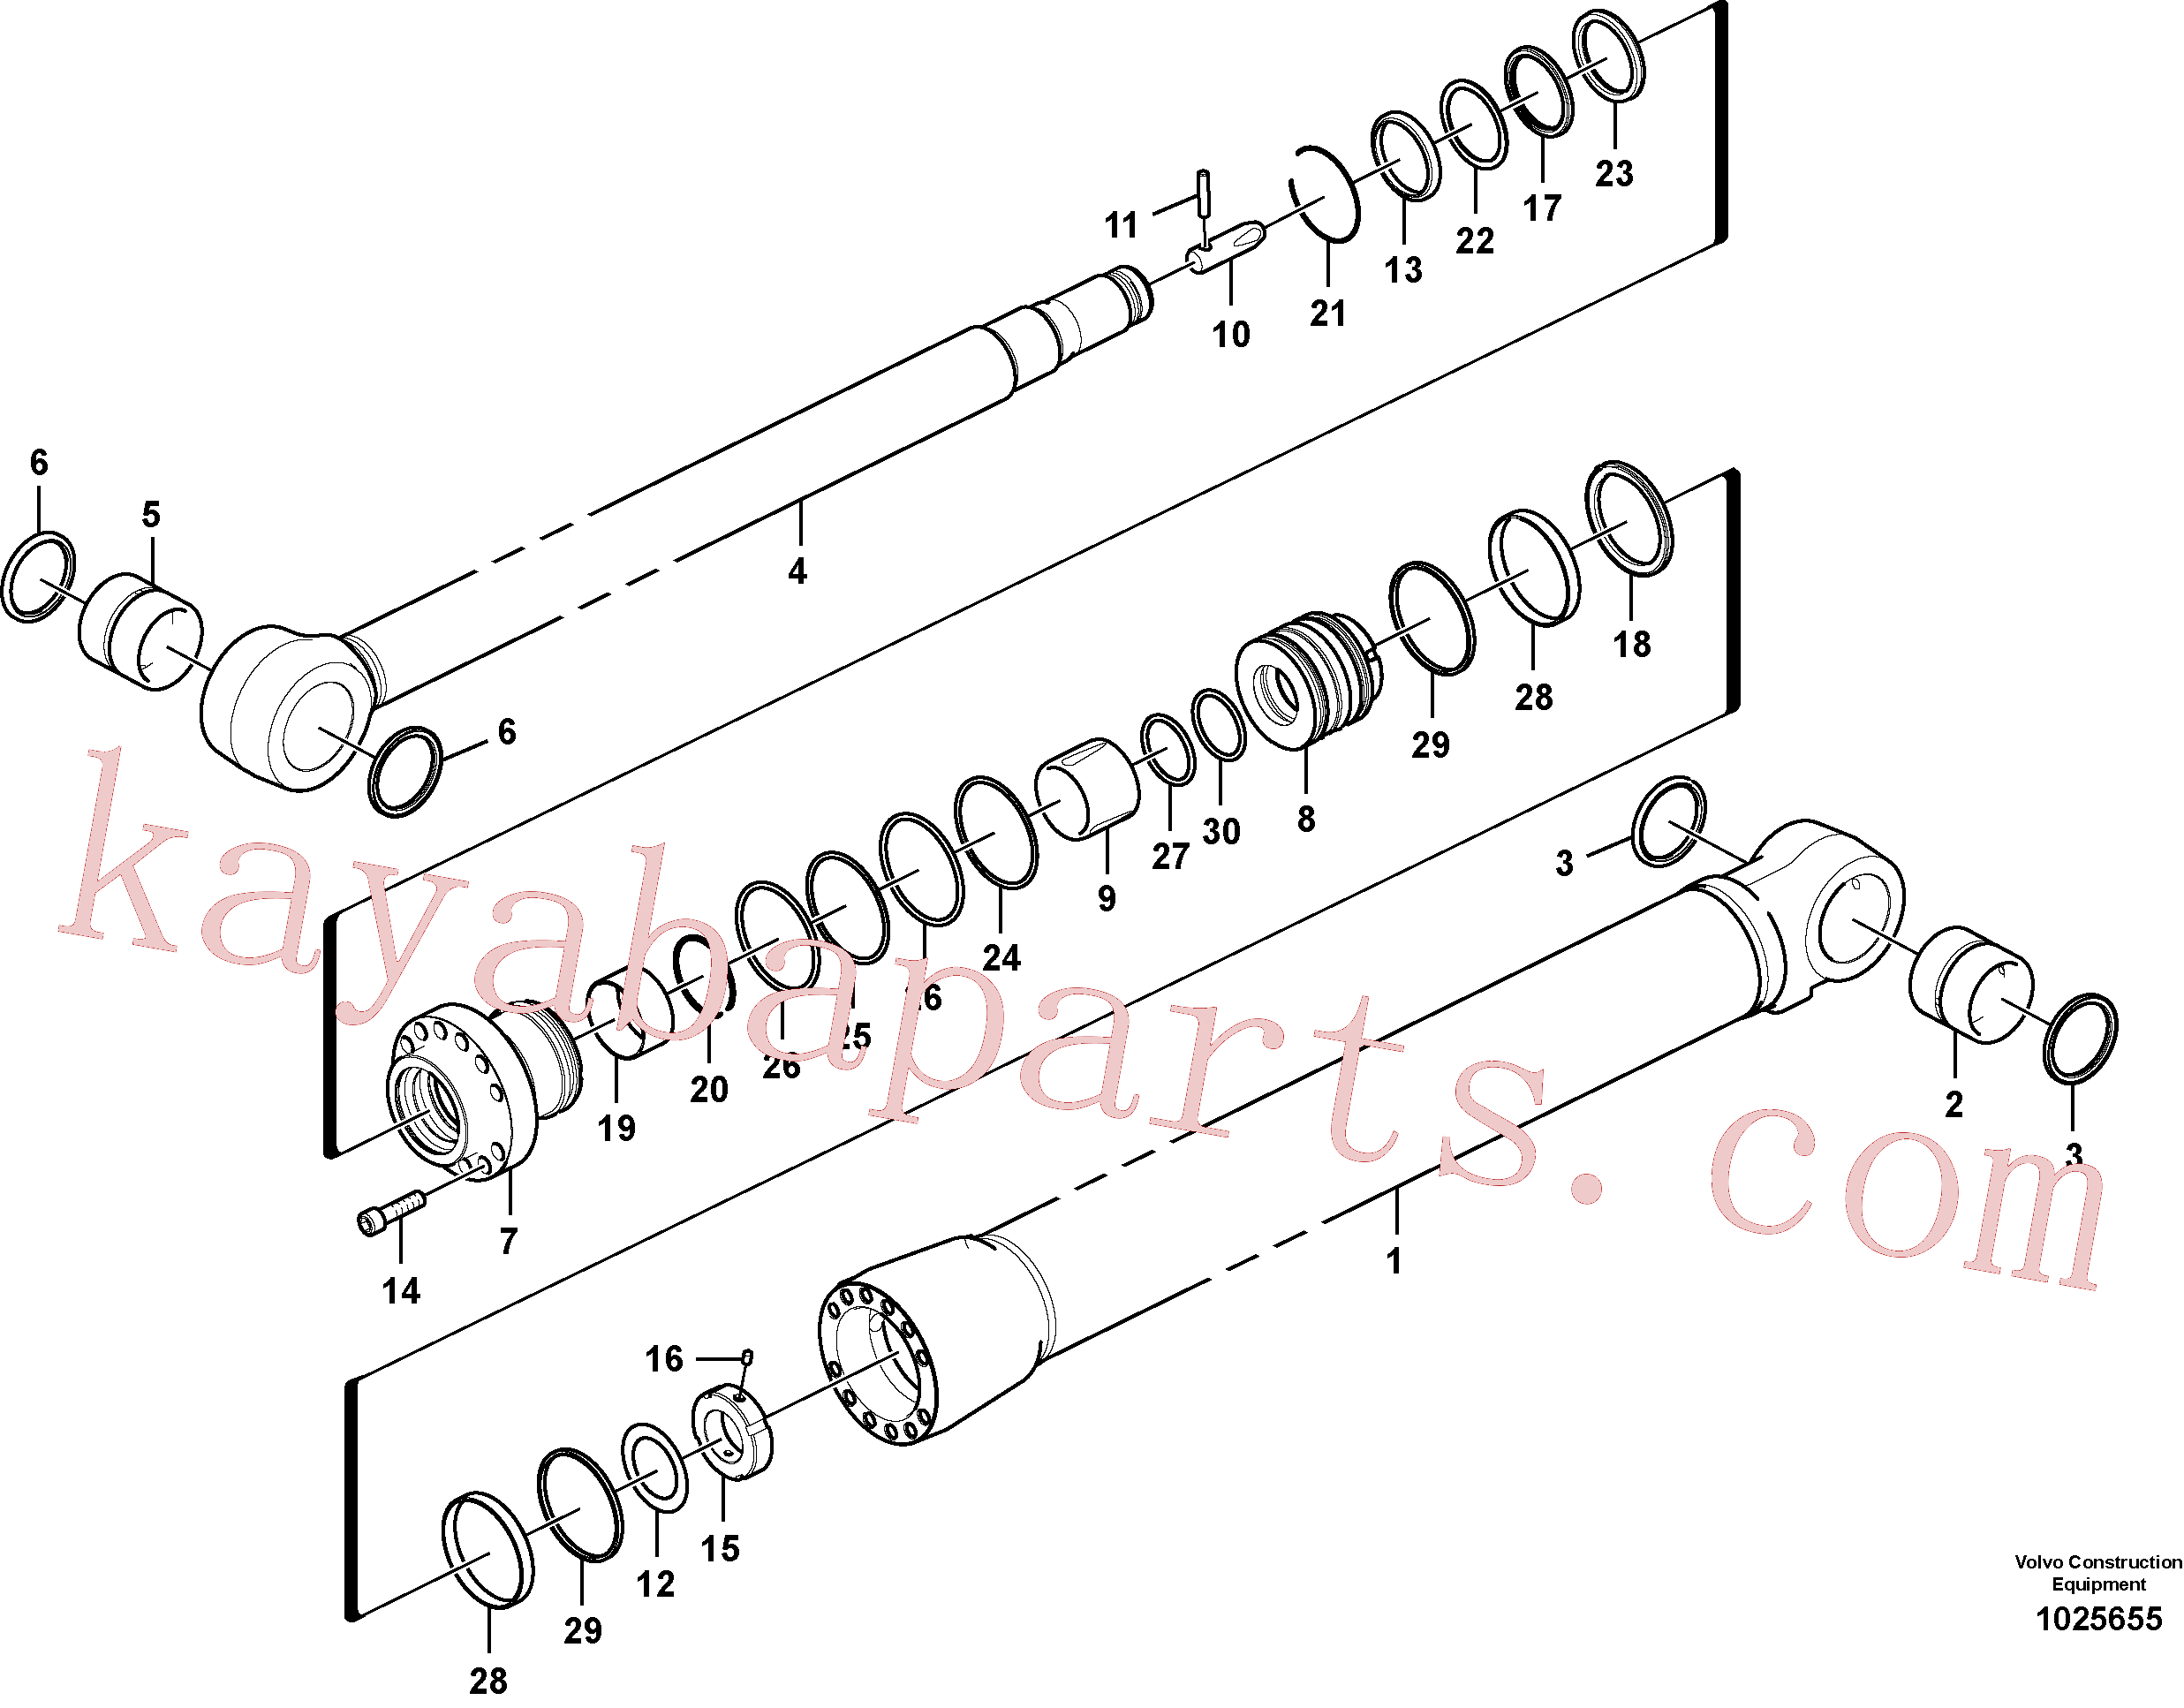 SA9566-31400 for Volvo Dipper arm cylinder(1025655 assembly)